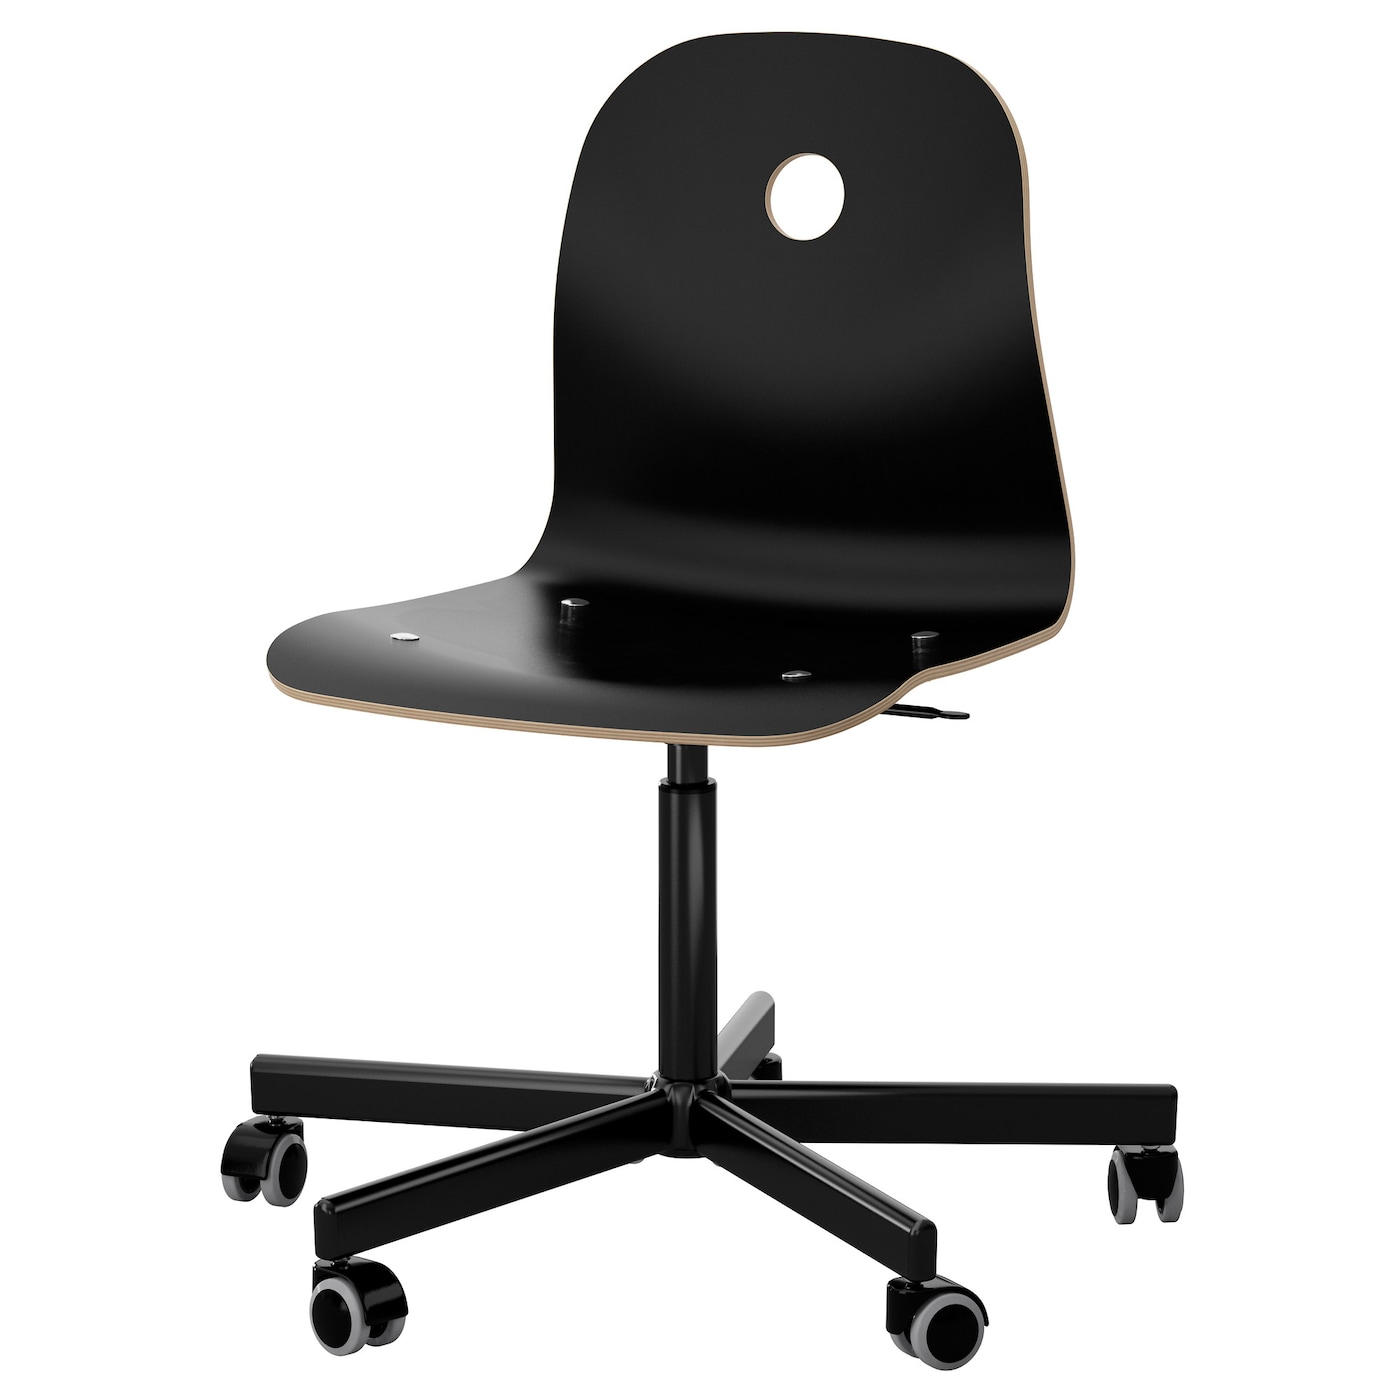 IKEA VÅGSBERG/SPORREN swivel chair You sit comfortably since the chair is adjustable in height.